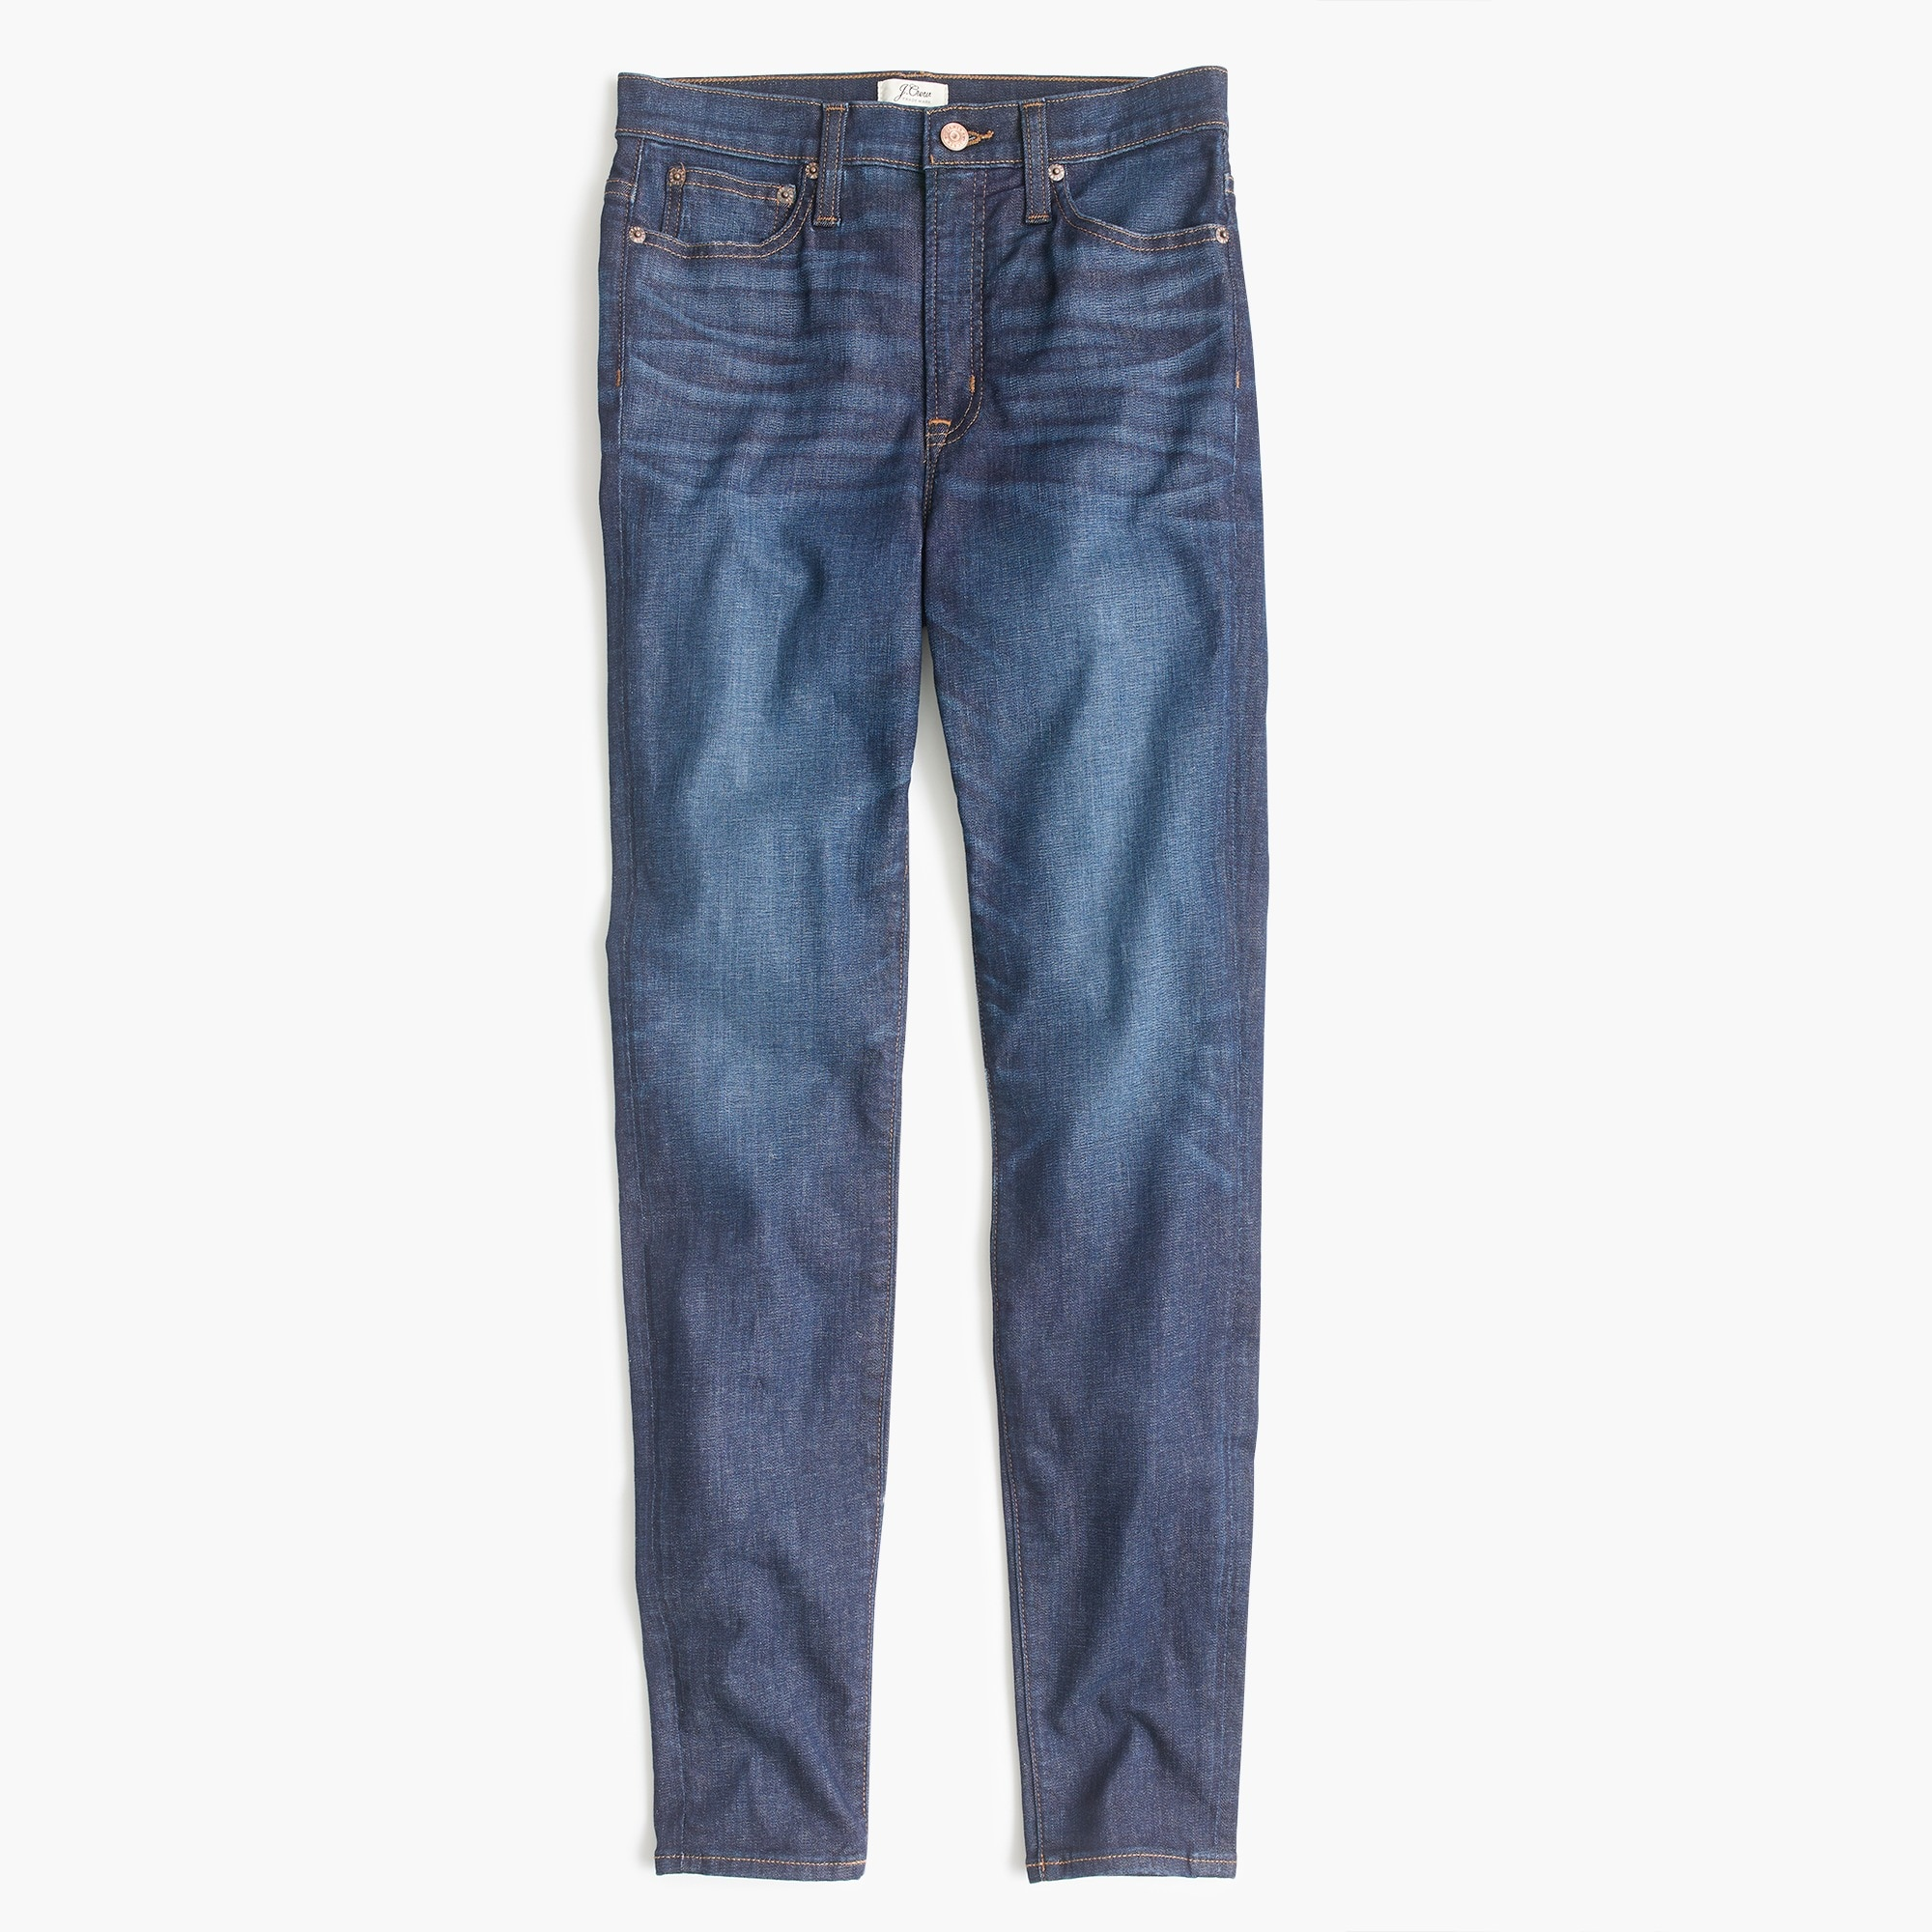 "Image 5 for Petite 10"" highest-rise toothpick jean in medium wash"